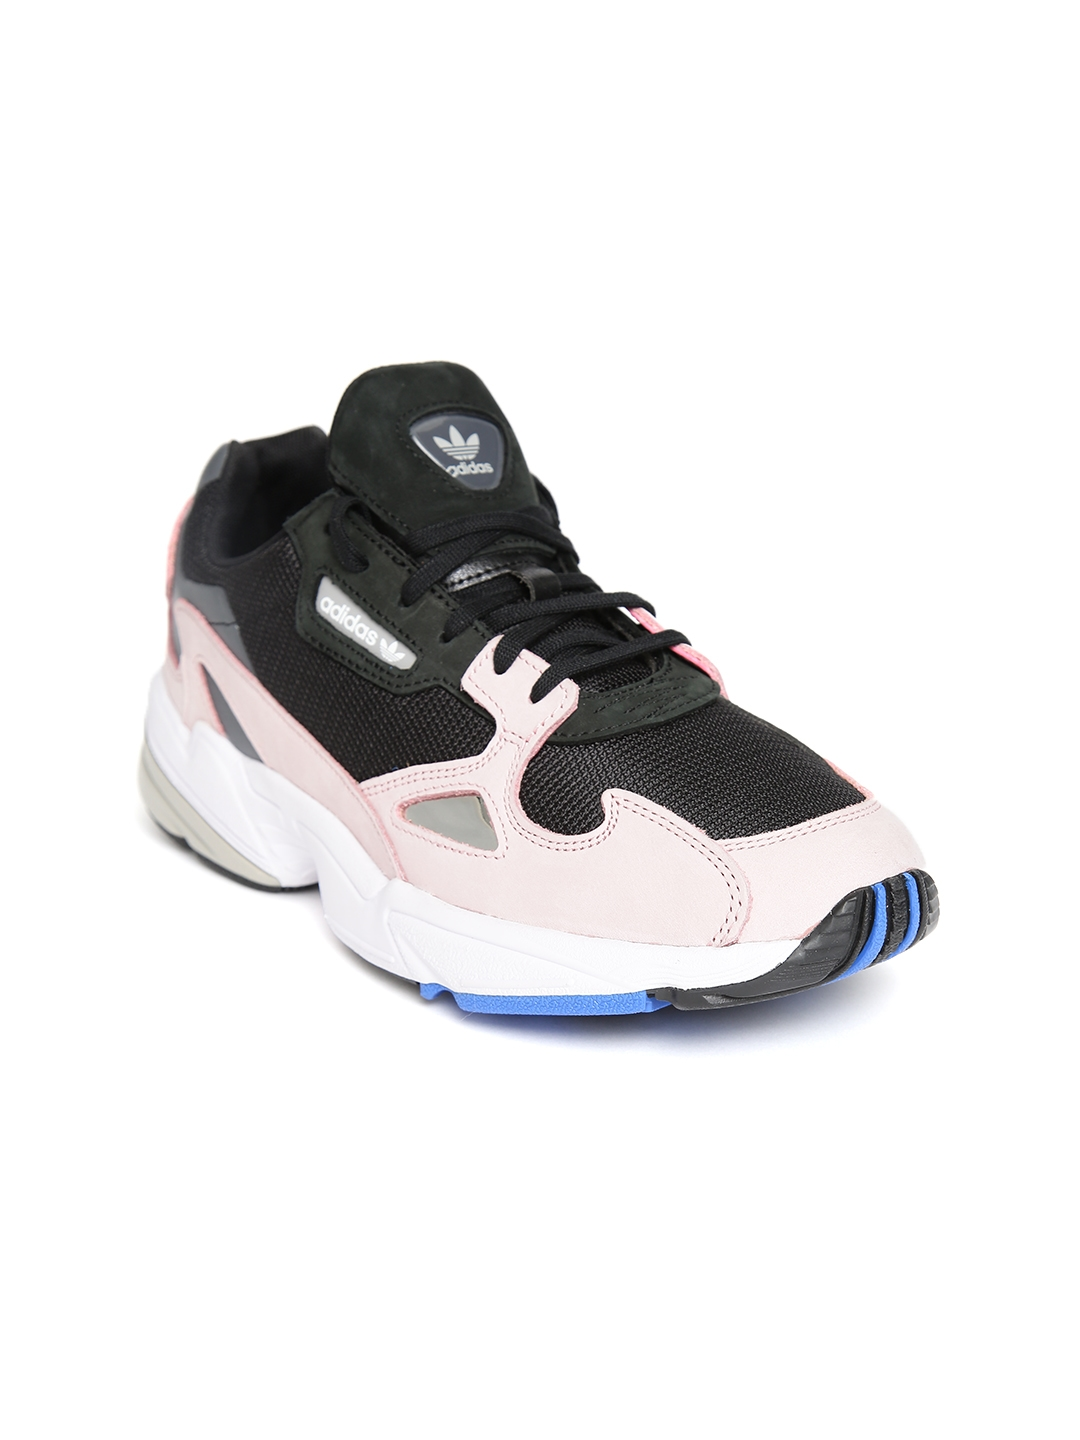 separation shoes 90246 a30cc ADIDAS Originals Women Black   Pink Colourblocked Falcon Sneakers